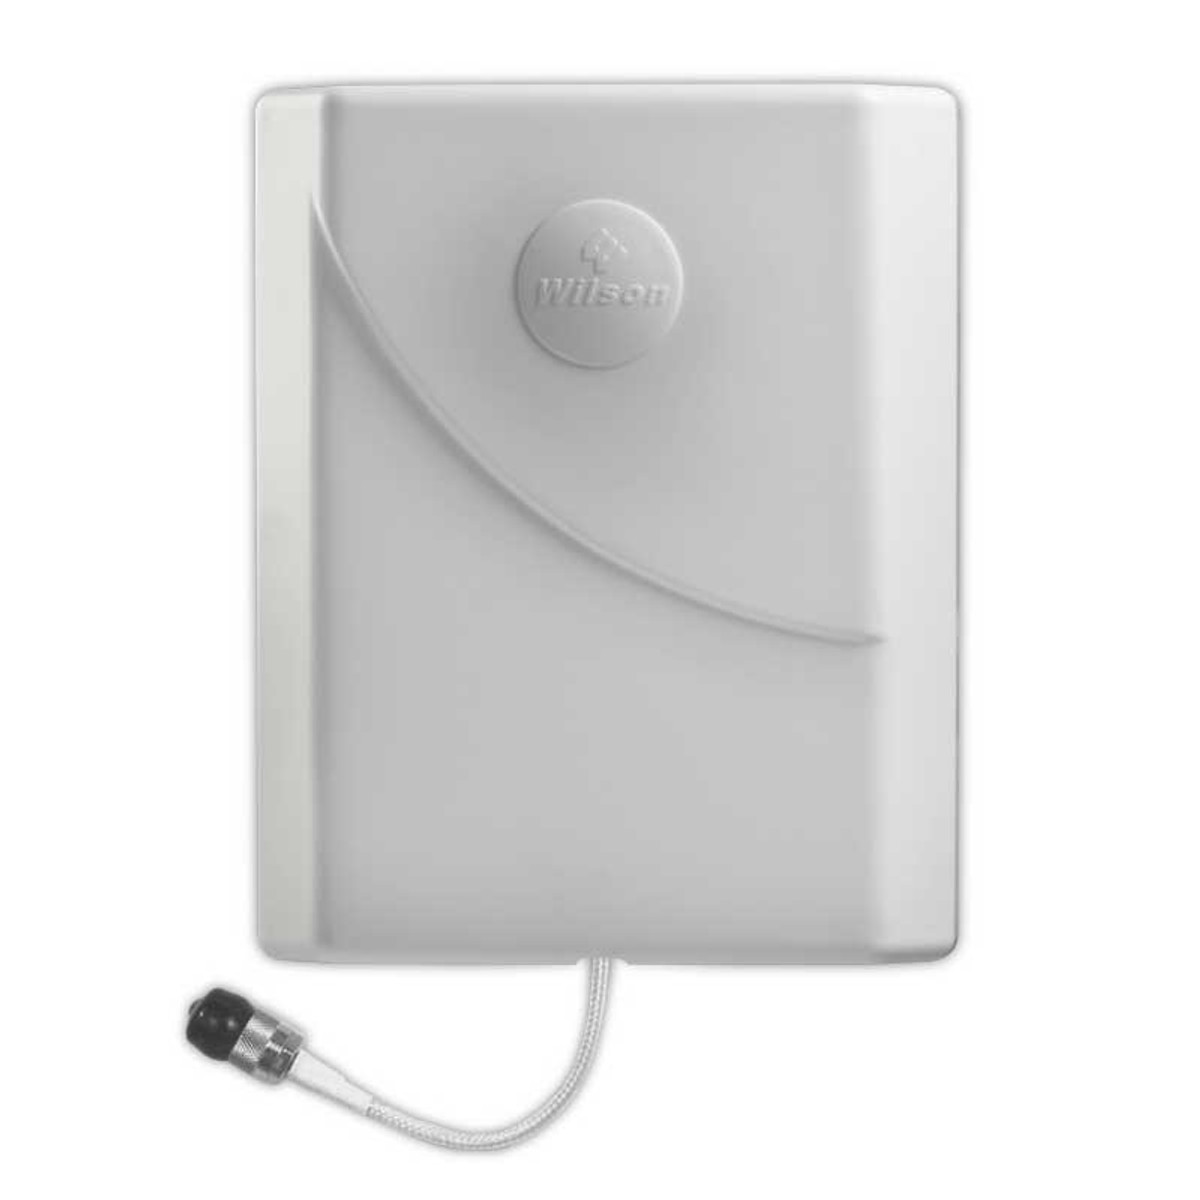 Wilson 304471 Ceiling Mount Panel Antenna 700-2700Mhz 75 ohms Multi Band, larger image